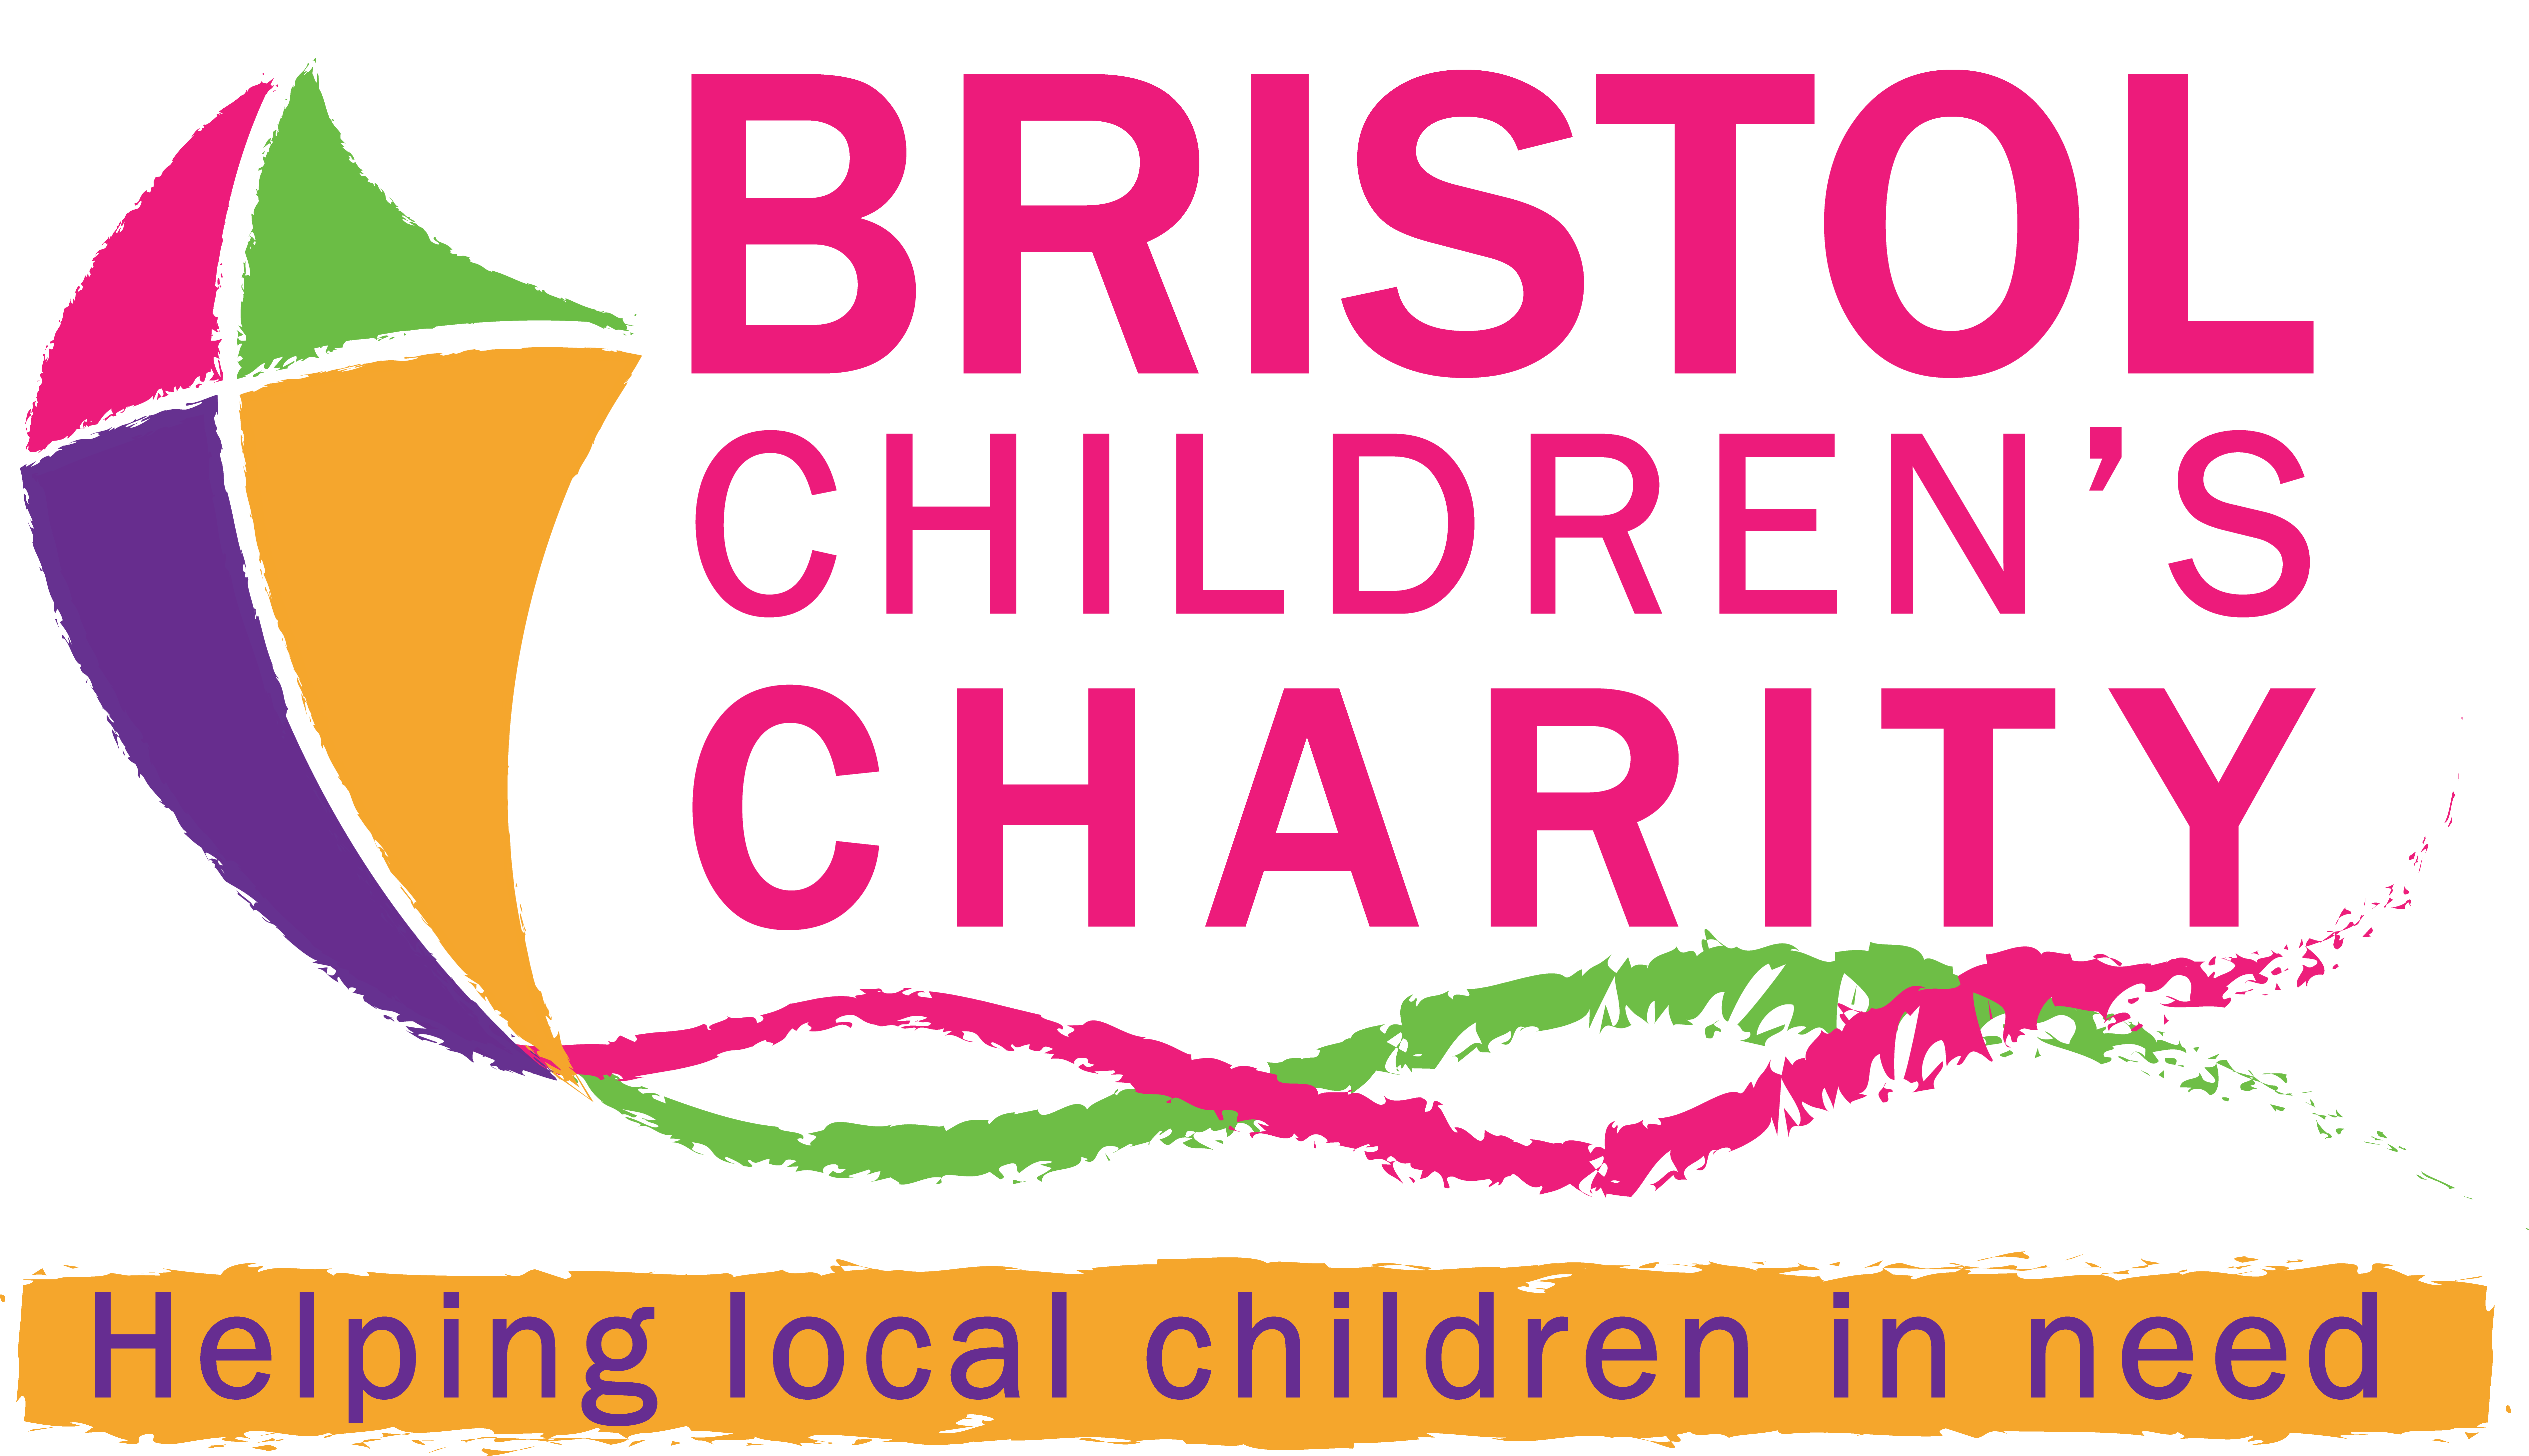 Bristol Children's Charity